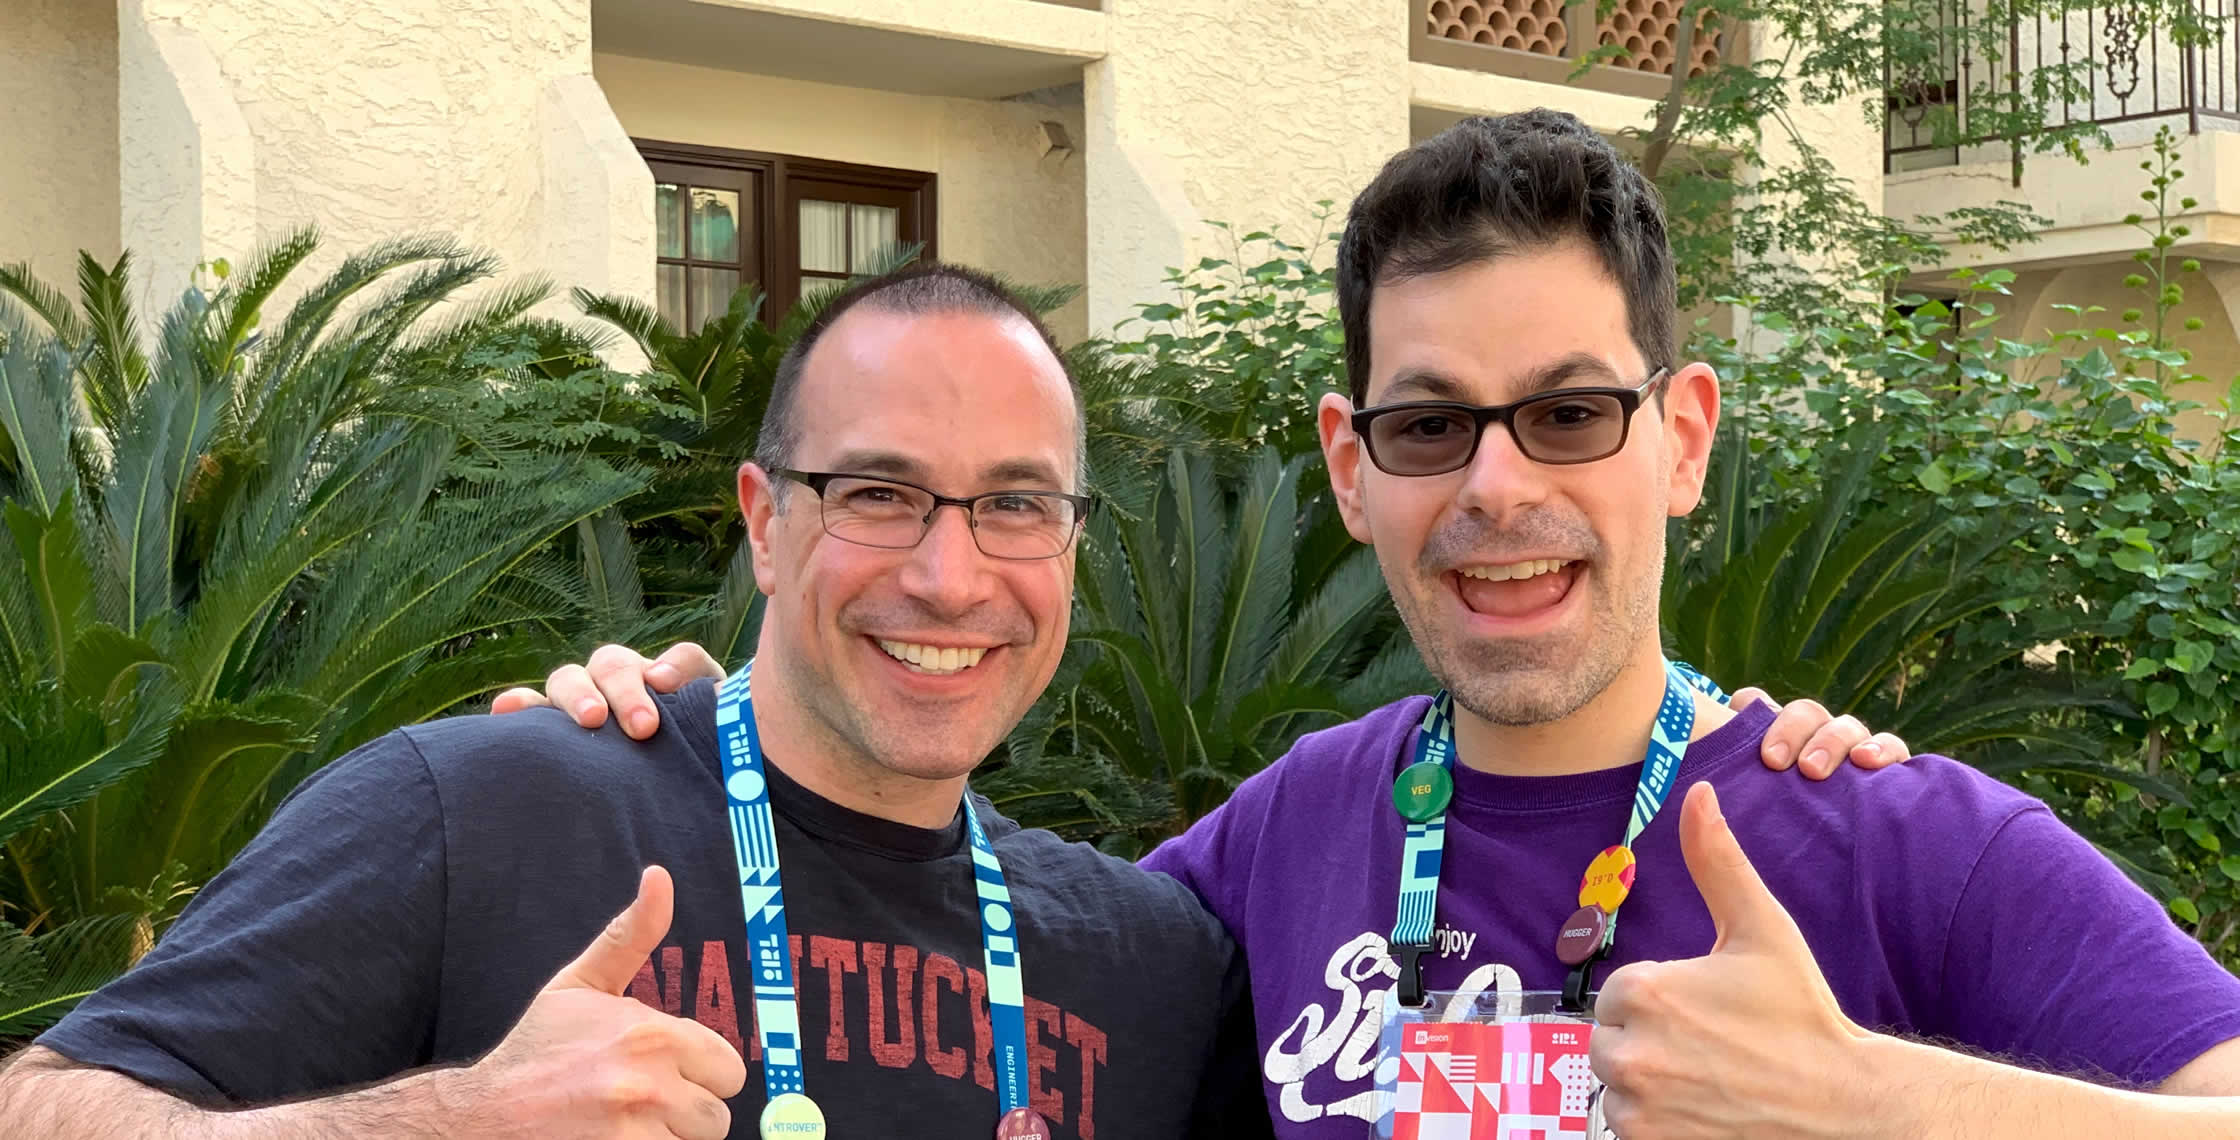 Ben Nadel at InVision In Real Life (IRL) 2019 (Phoenix, AZ) with: Adam DiCarlo